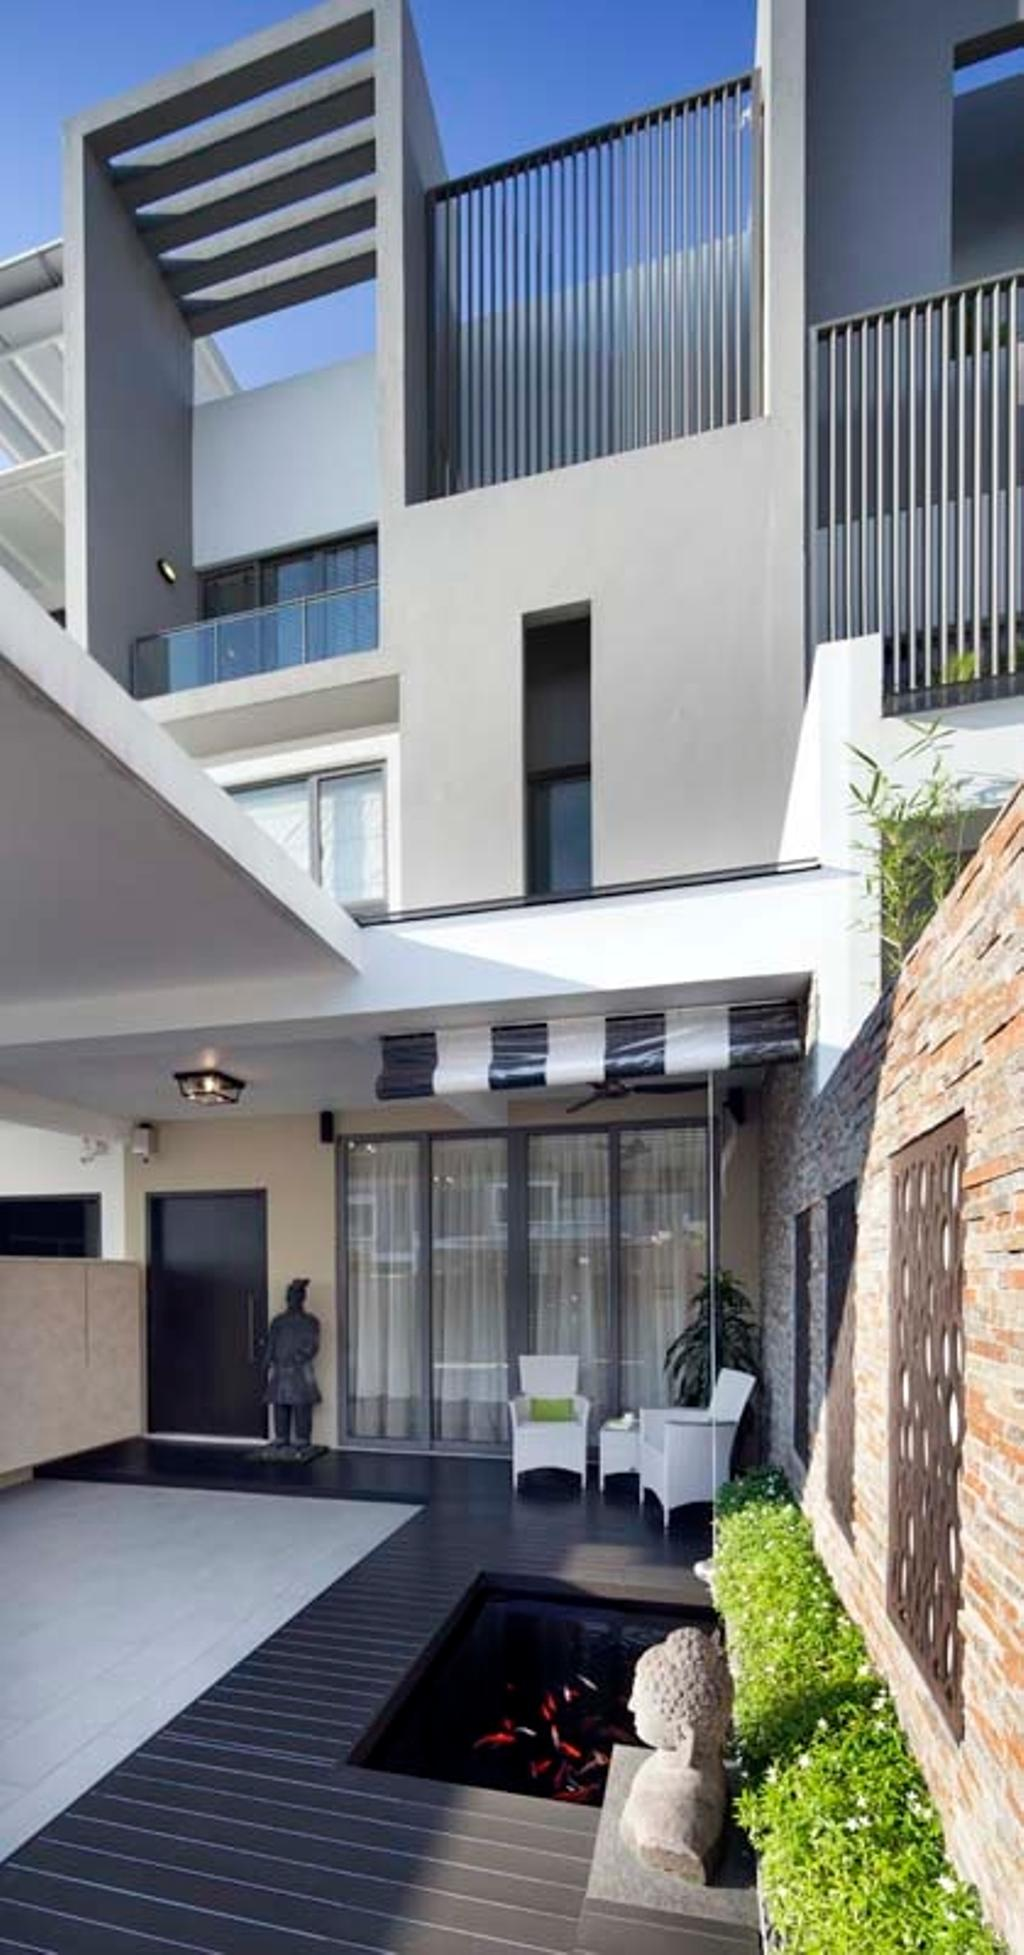 Contemporary, Landed, Garden, Pavillion Circle, Interior Designer, Boon Siew D'sign, Blinds, Wood Floor, Plants, Statue, Patio, Chairs, Flora, Jar, Plant, Potted Plant, Pottery, Vase, Architecture, Building, Skylight, Window, Appliance, Electrical Device, Microwave, Oven, Electronics, Monitor, Screen, Tv, Television